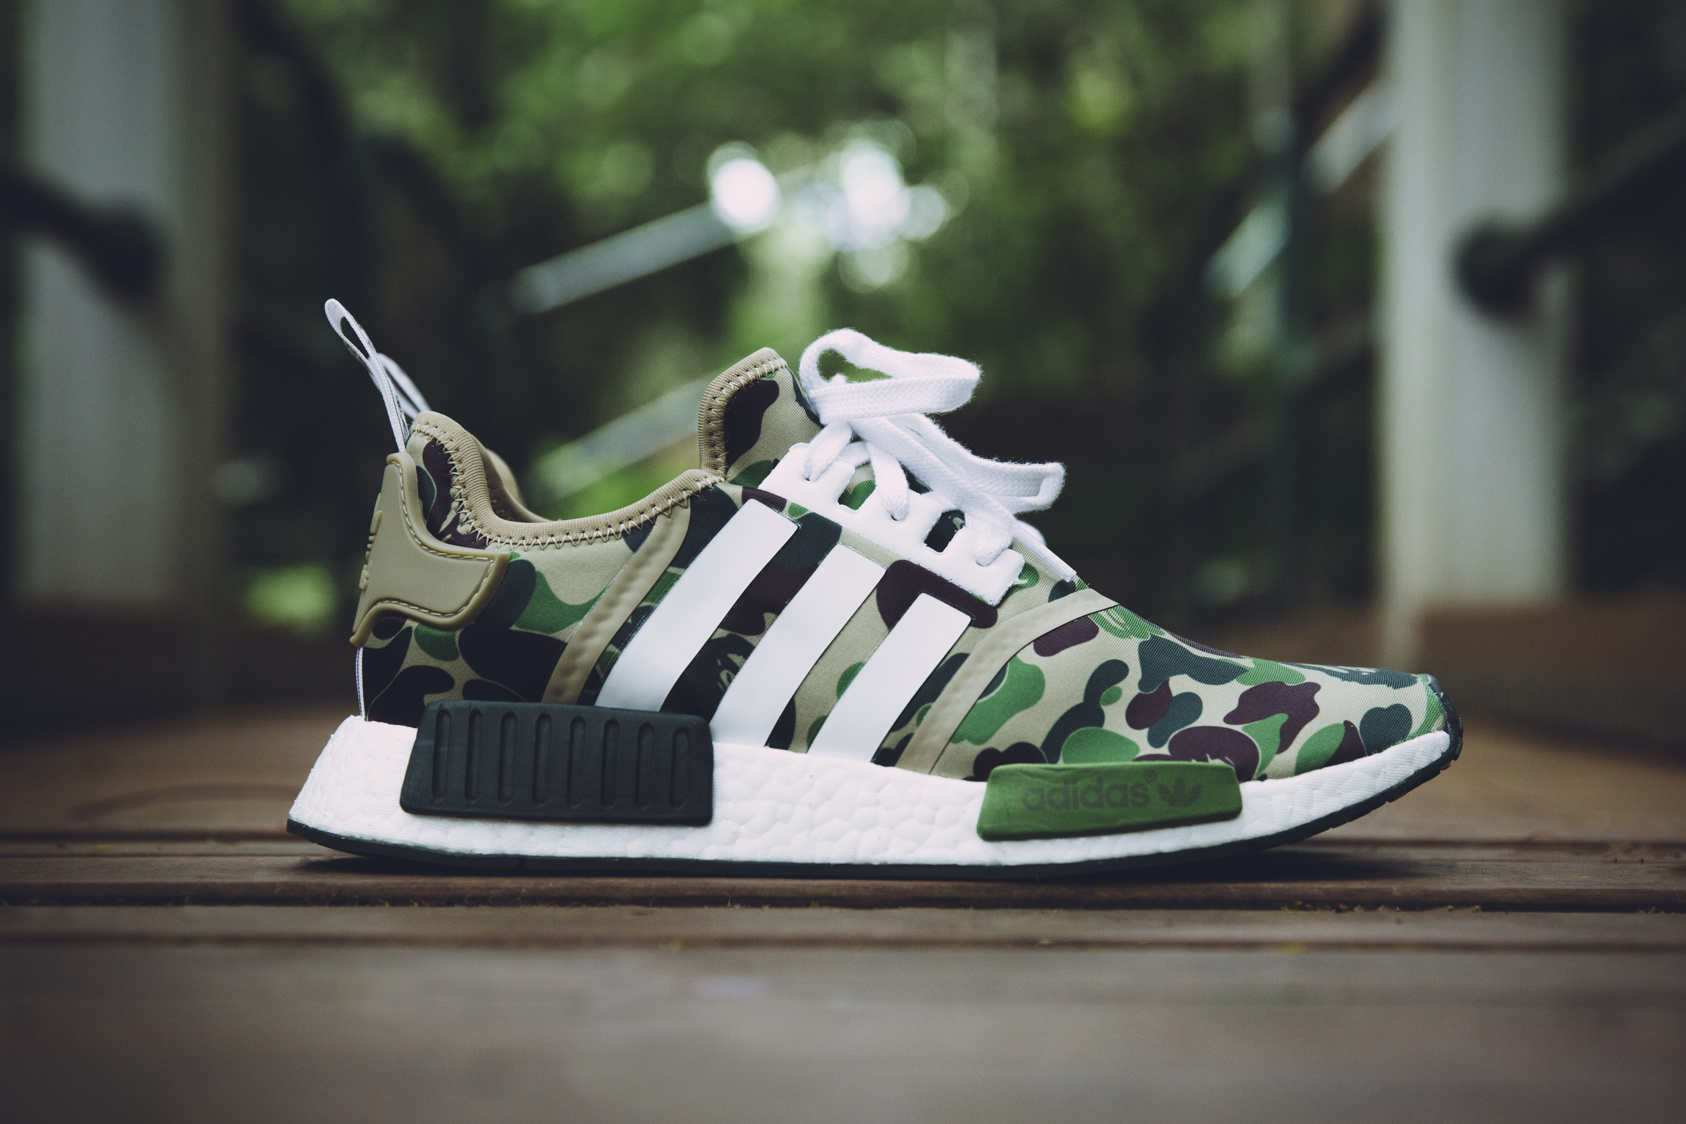 bape-x-adidas-originals-nmd-closer-look-1